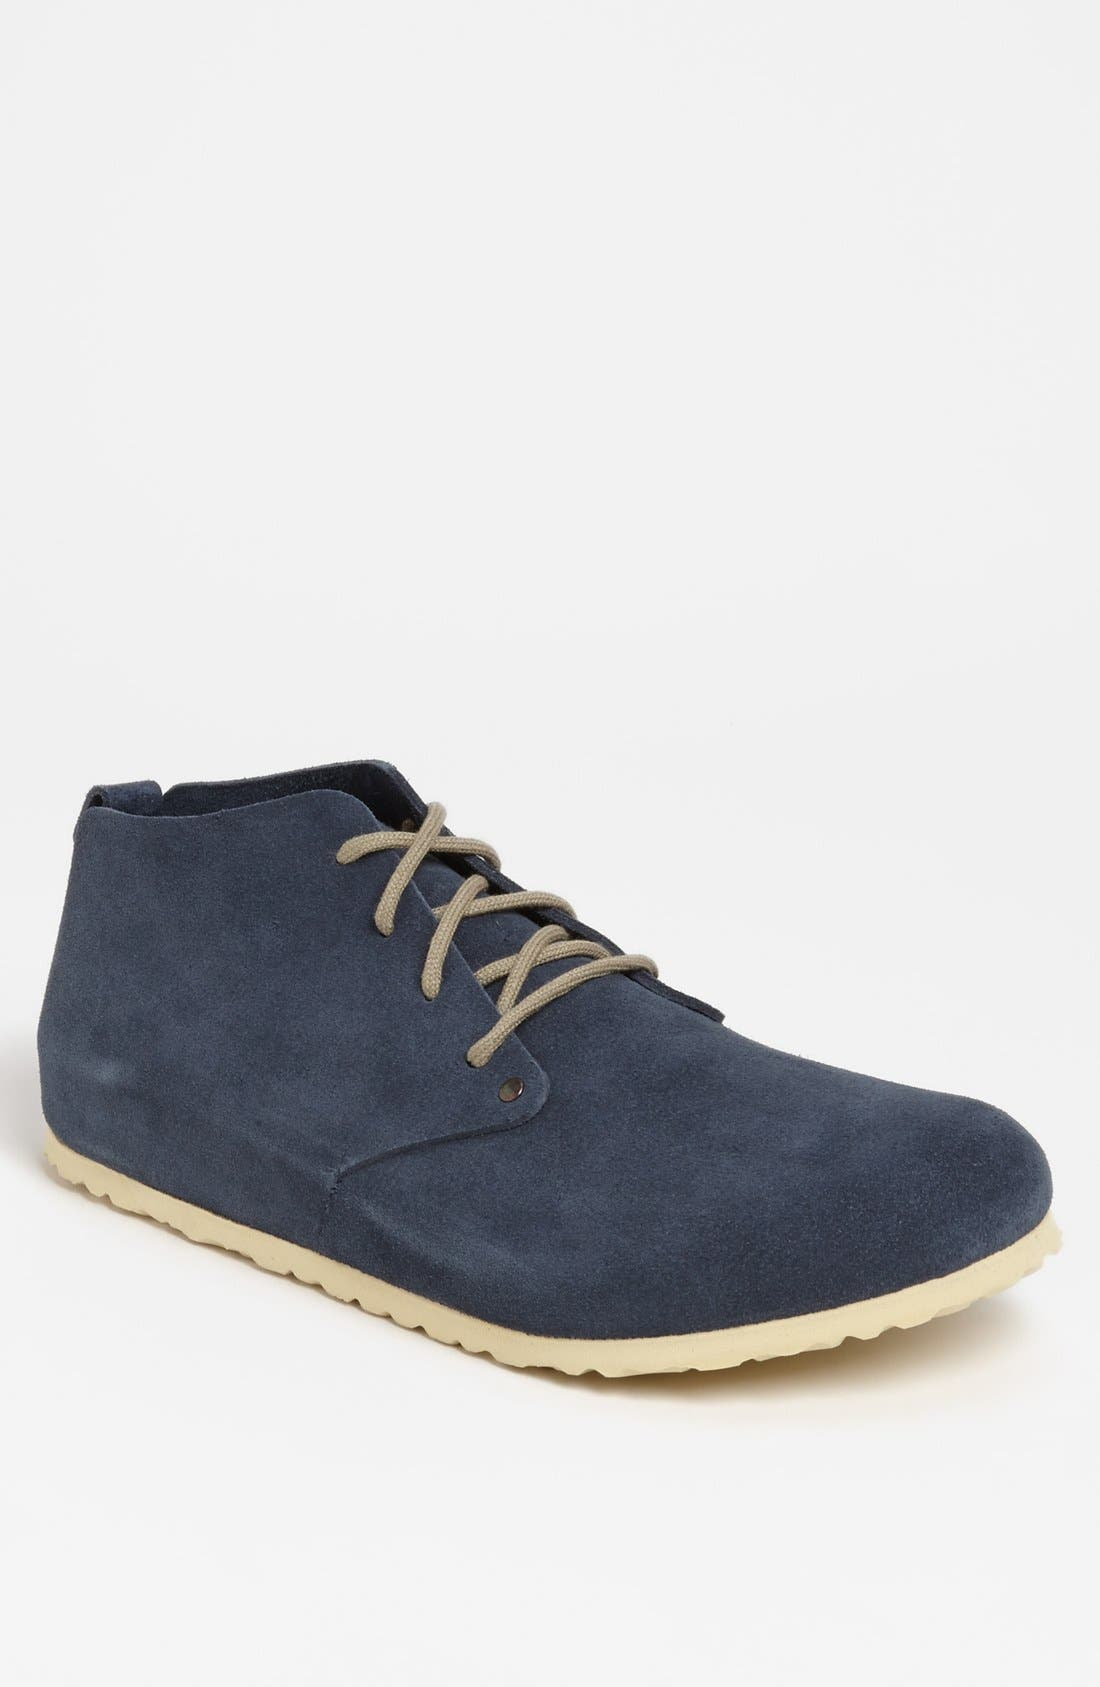 Alternate Image 1 Selected - Birkenstock 'Dundee' Chukka Boot (Men)